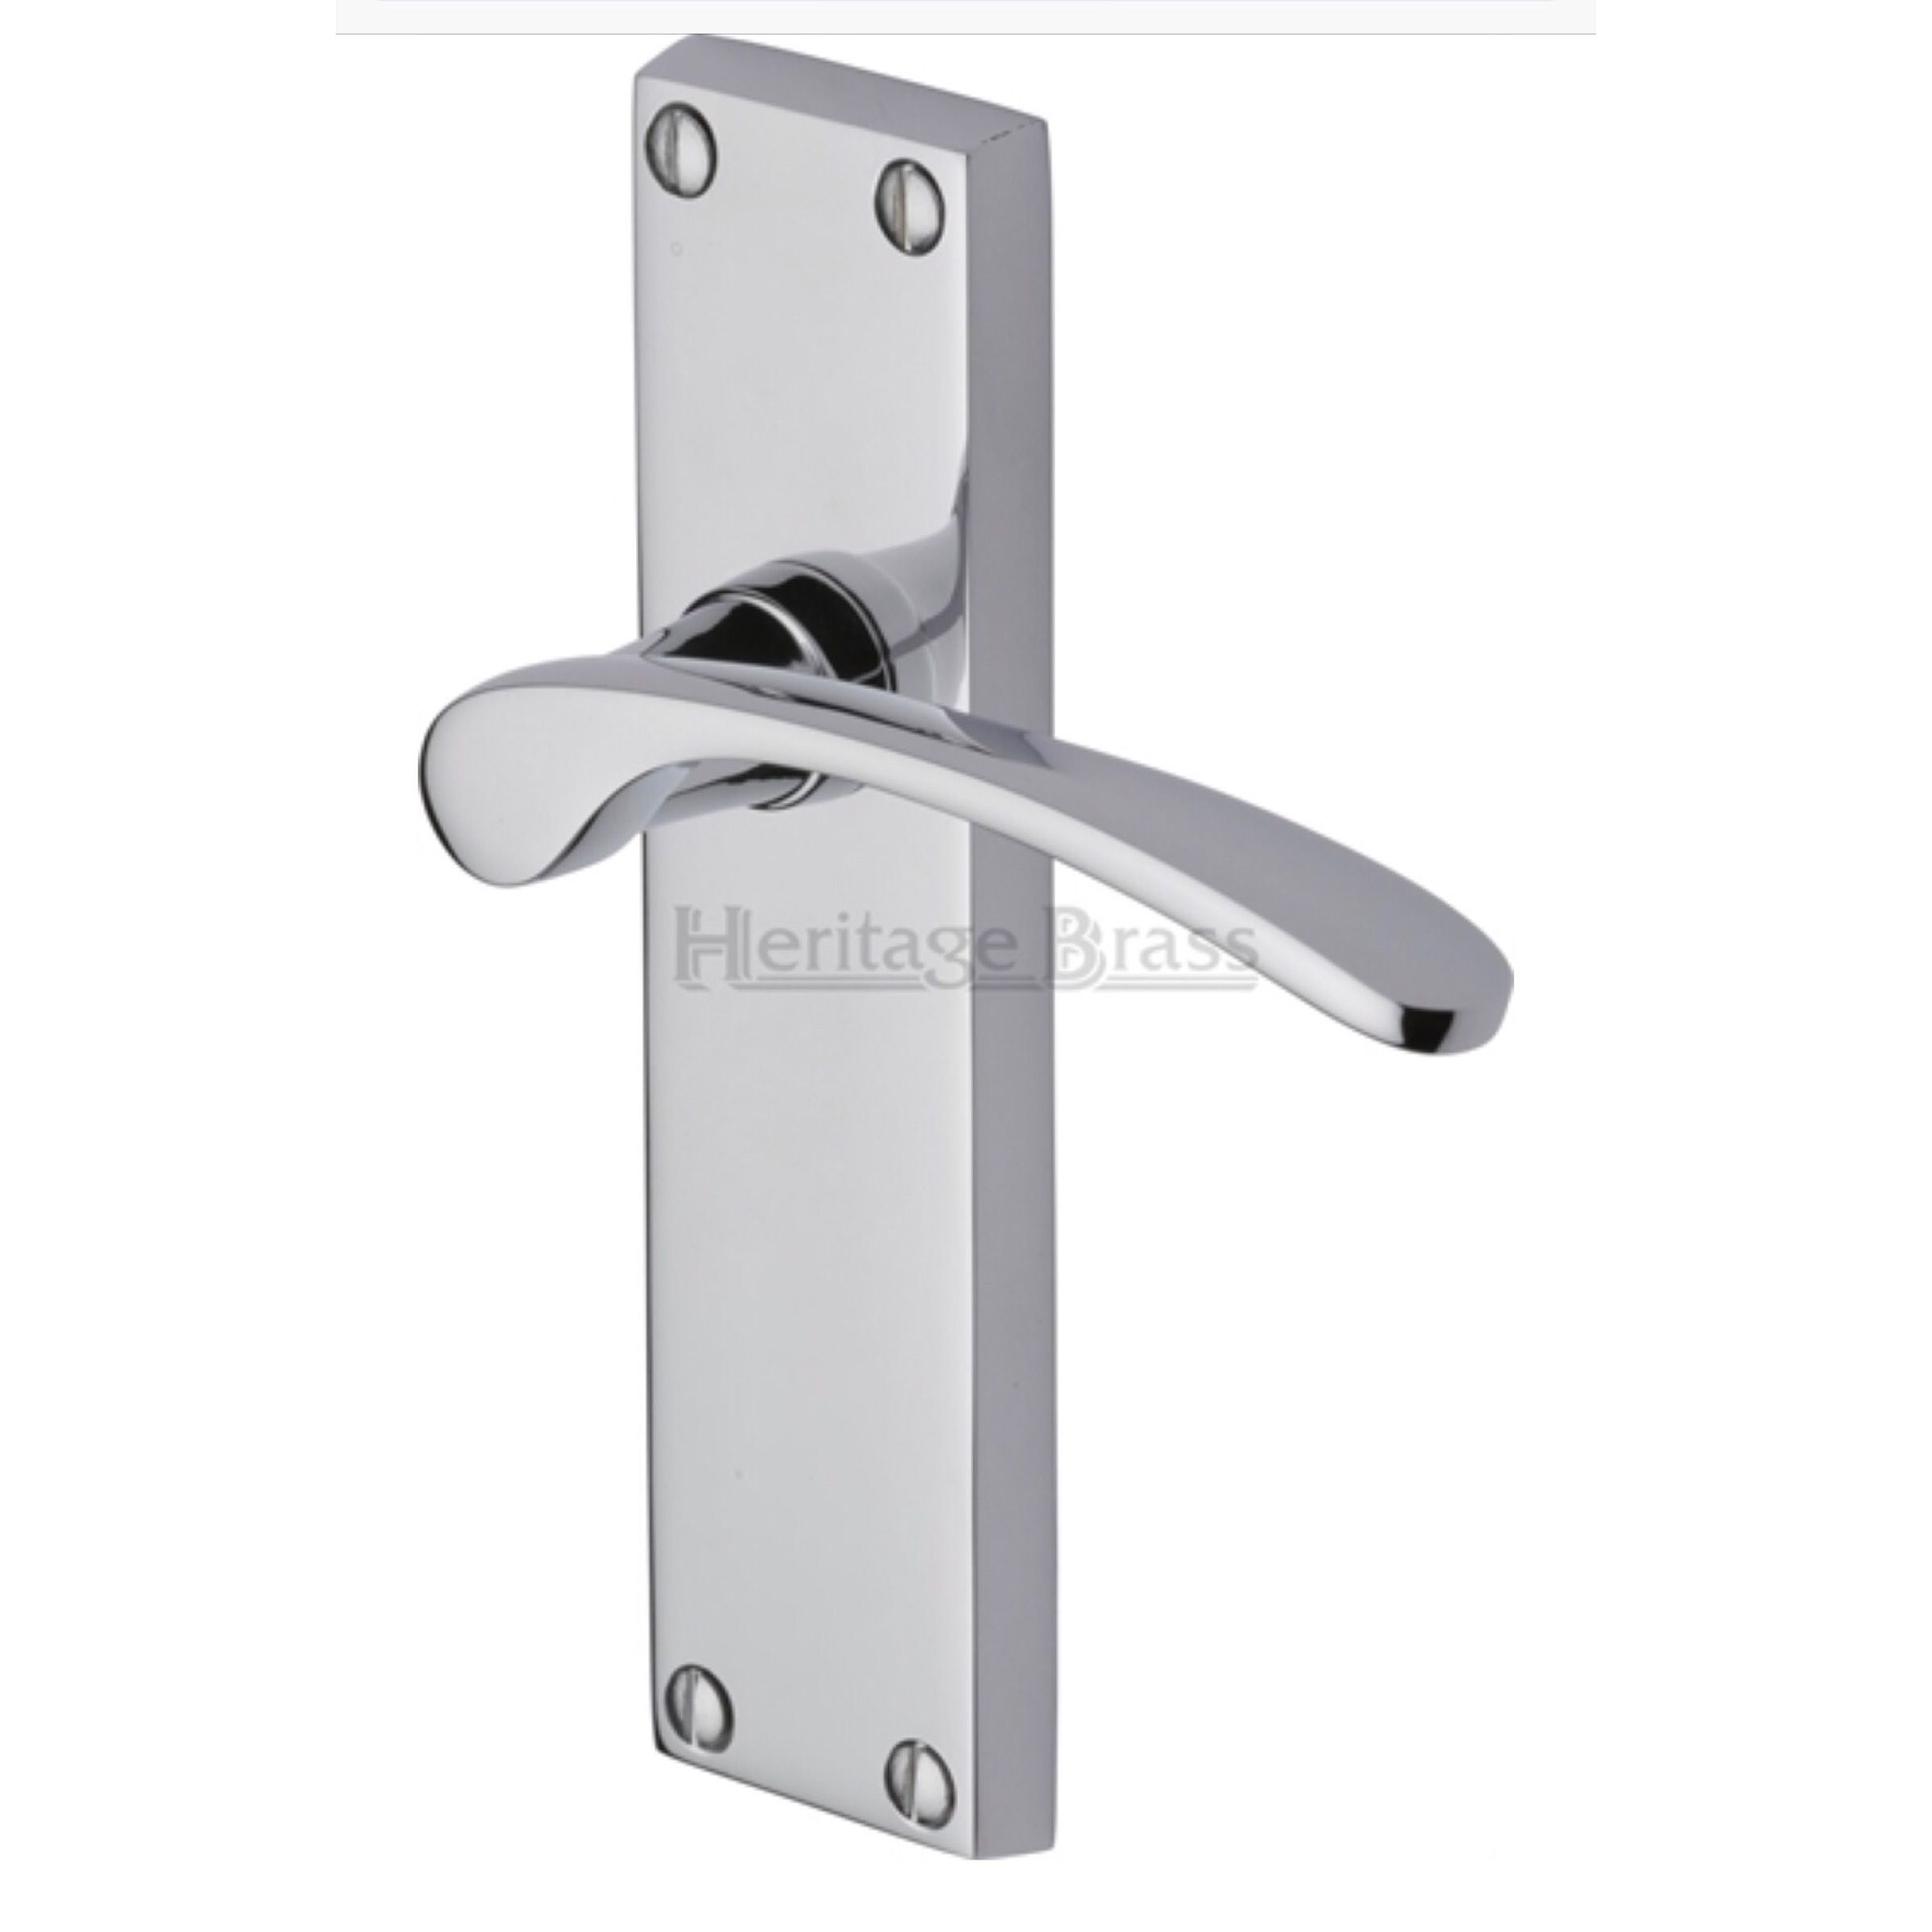 Sophia Door Handle On Backplate Dimensions 155mm X 40mm Supplied In Pairs Supplied With Spindle Screws Available Door Handles Polished Chrome Lever Latch